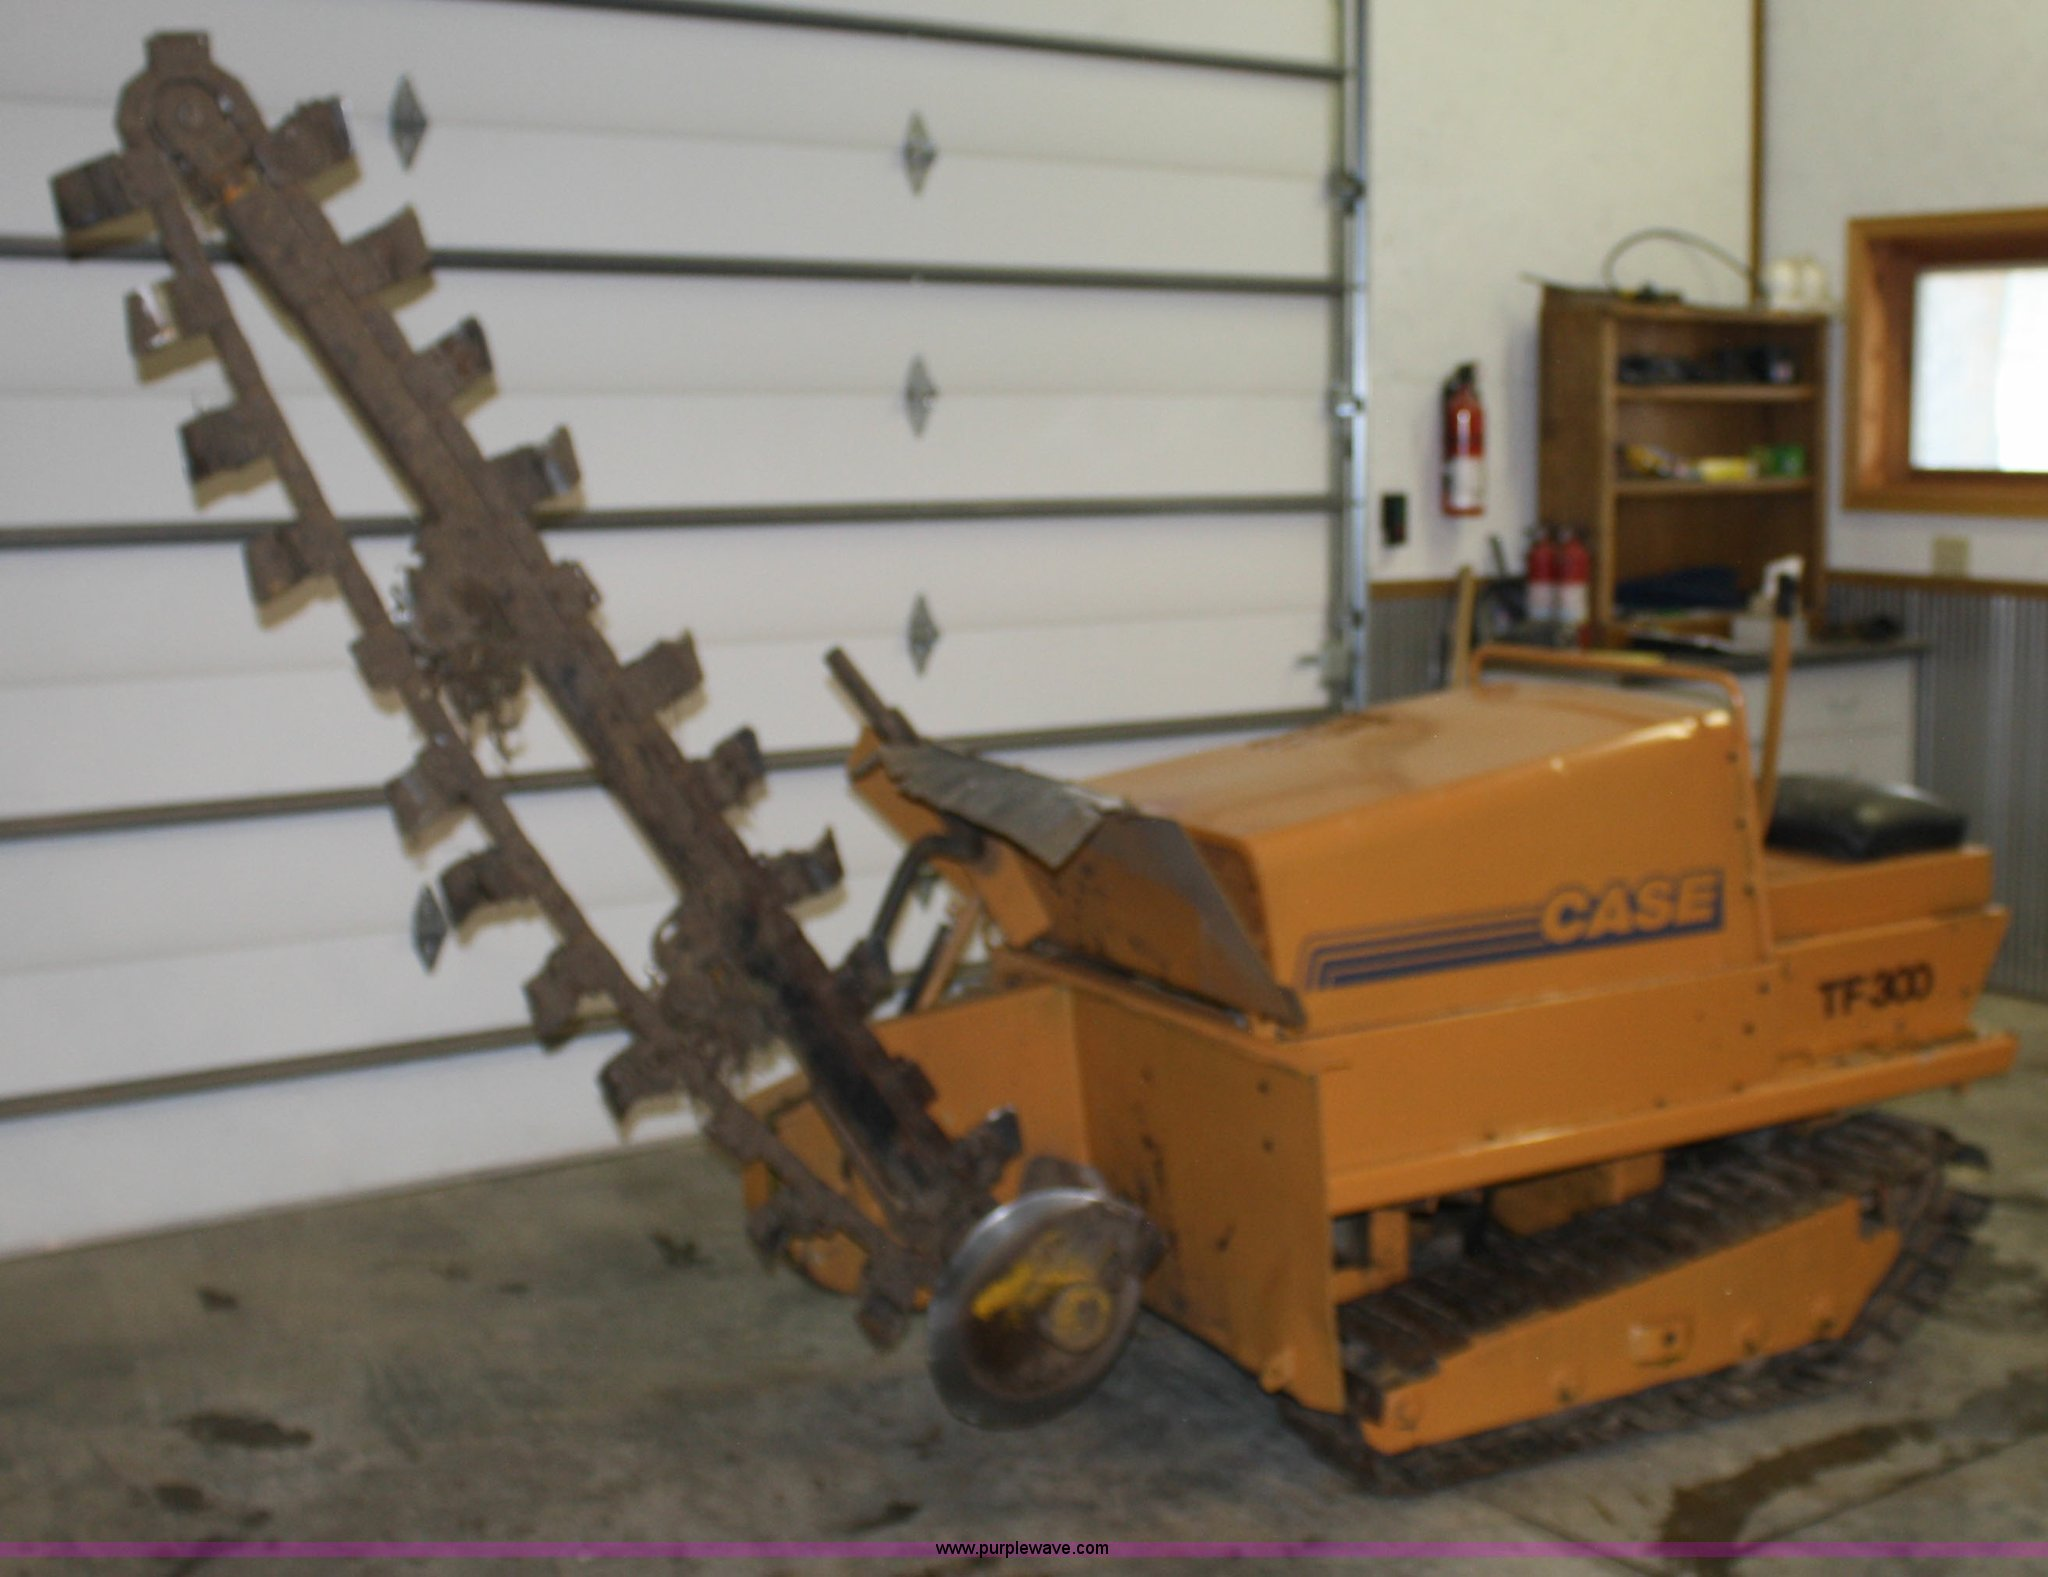 case tf300 trencher item 5047 sold thursday march 31 co rh purplewave com Trencher Problems Davis Trencher Parts